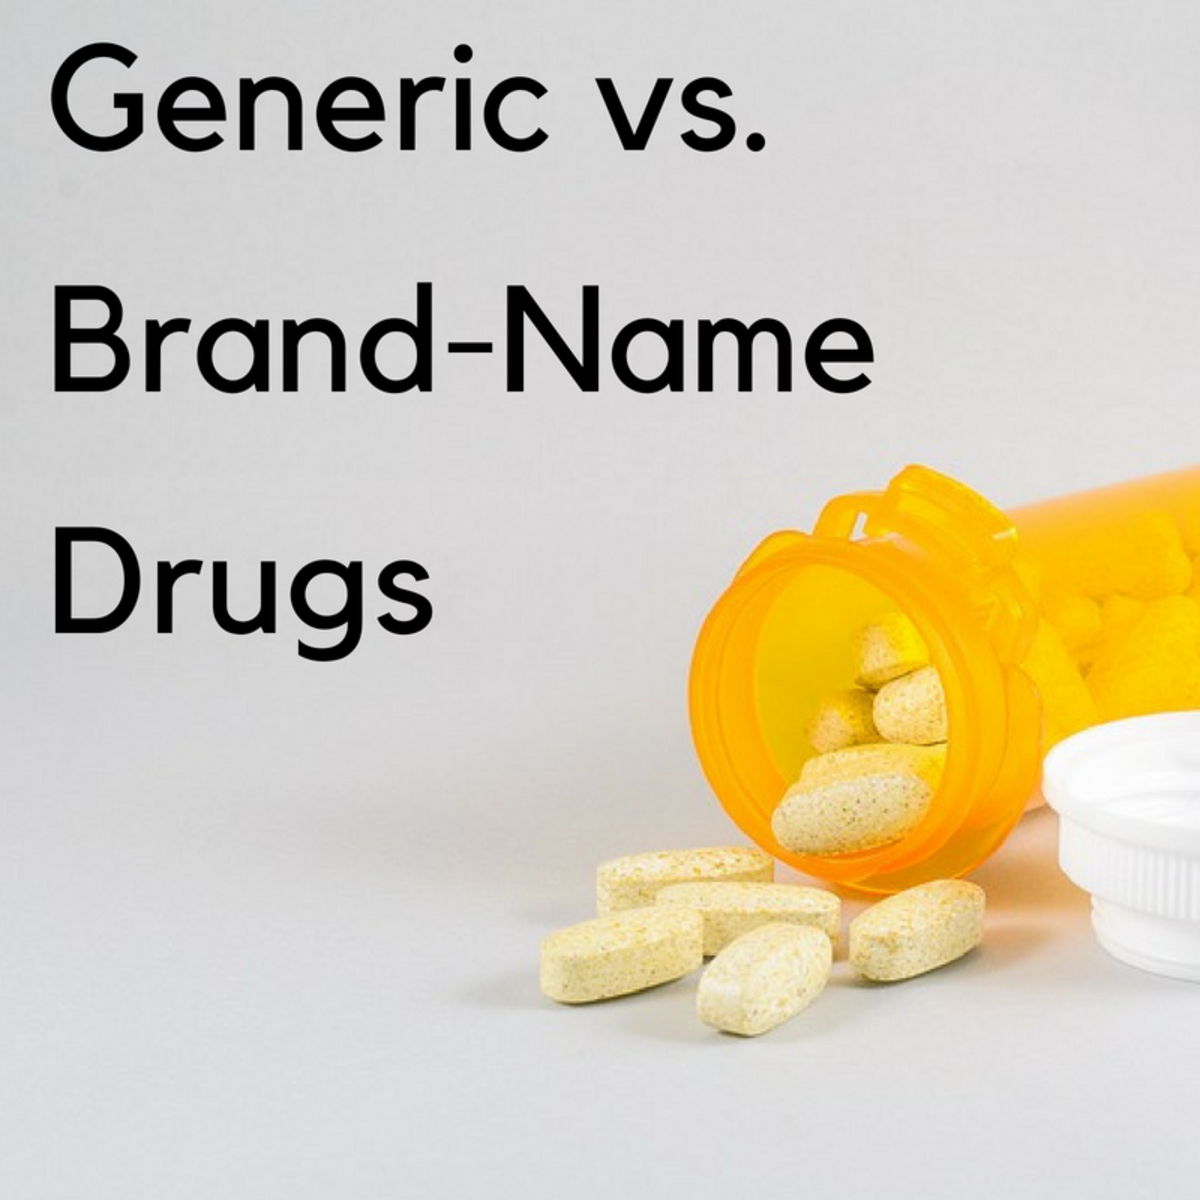 Are generics different from brand medications?